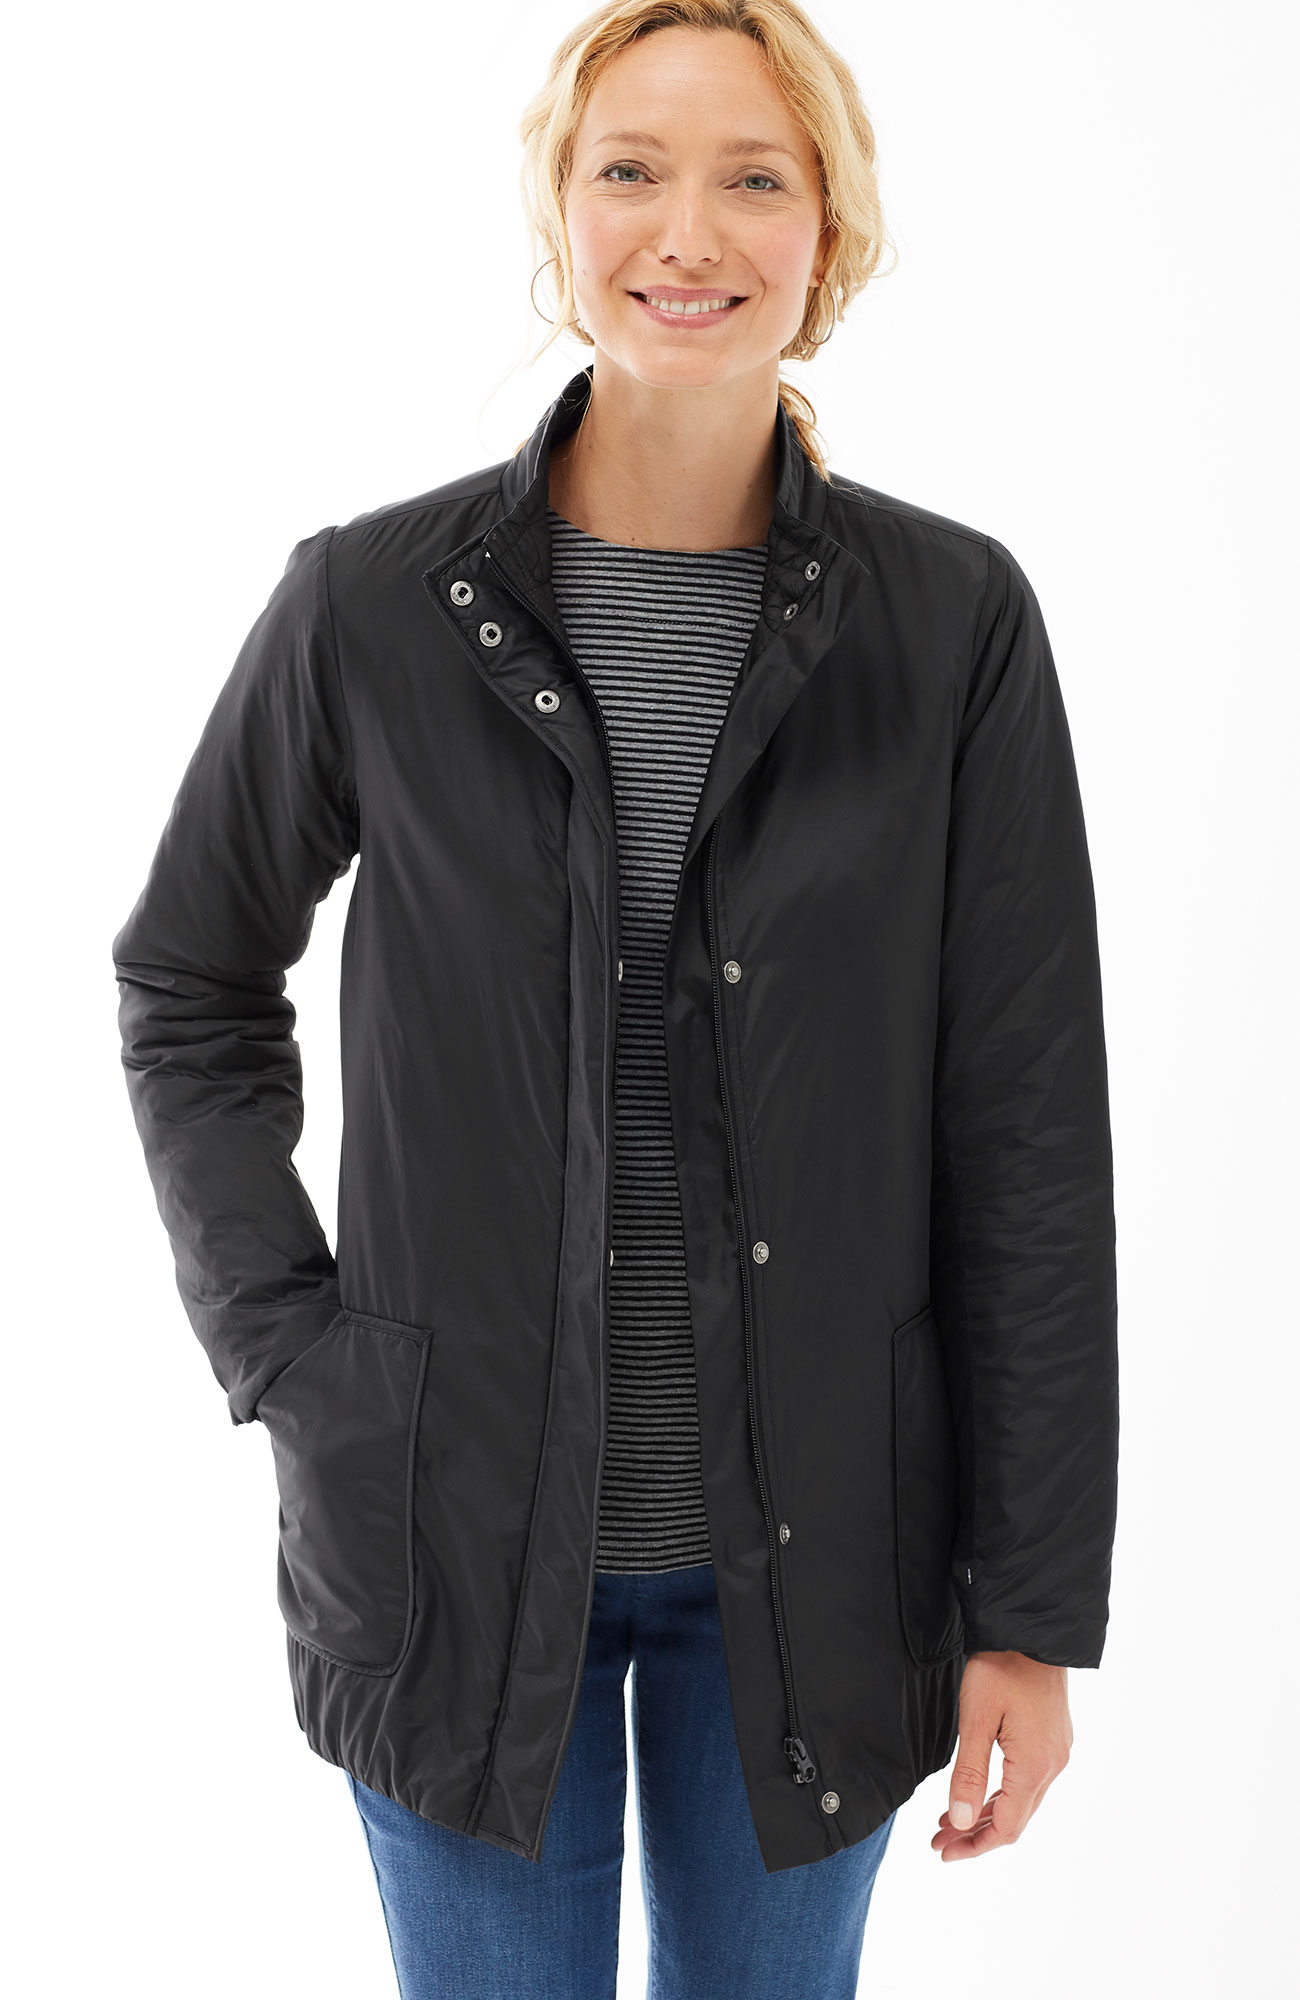 Easton quilt-lined jacket